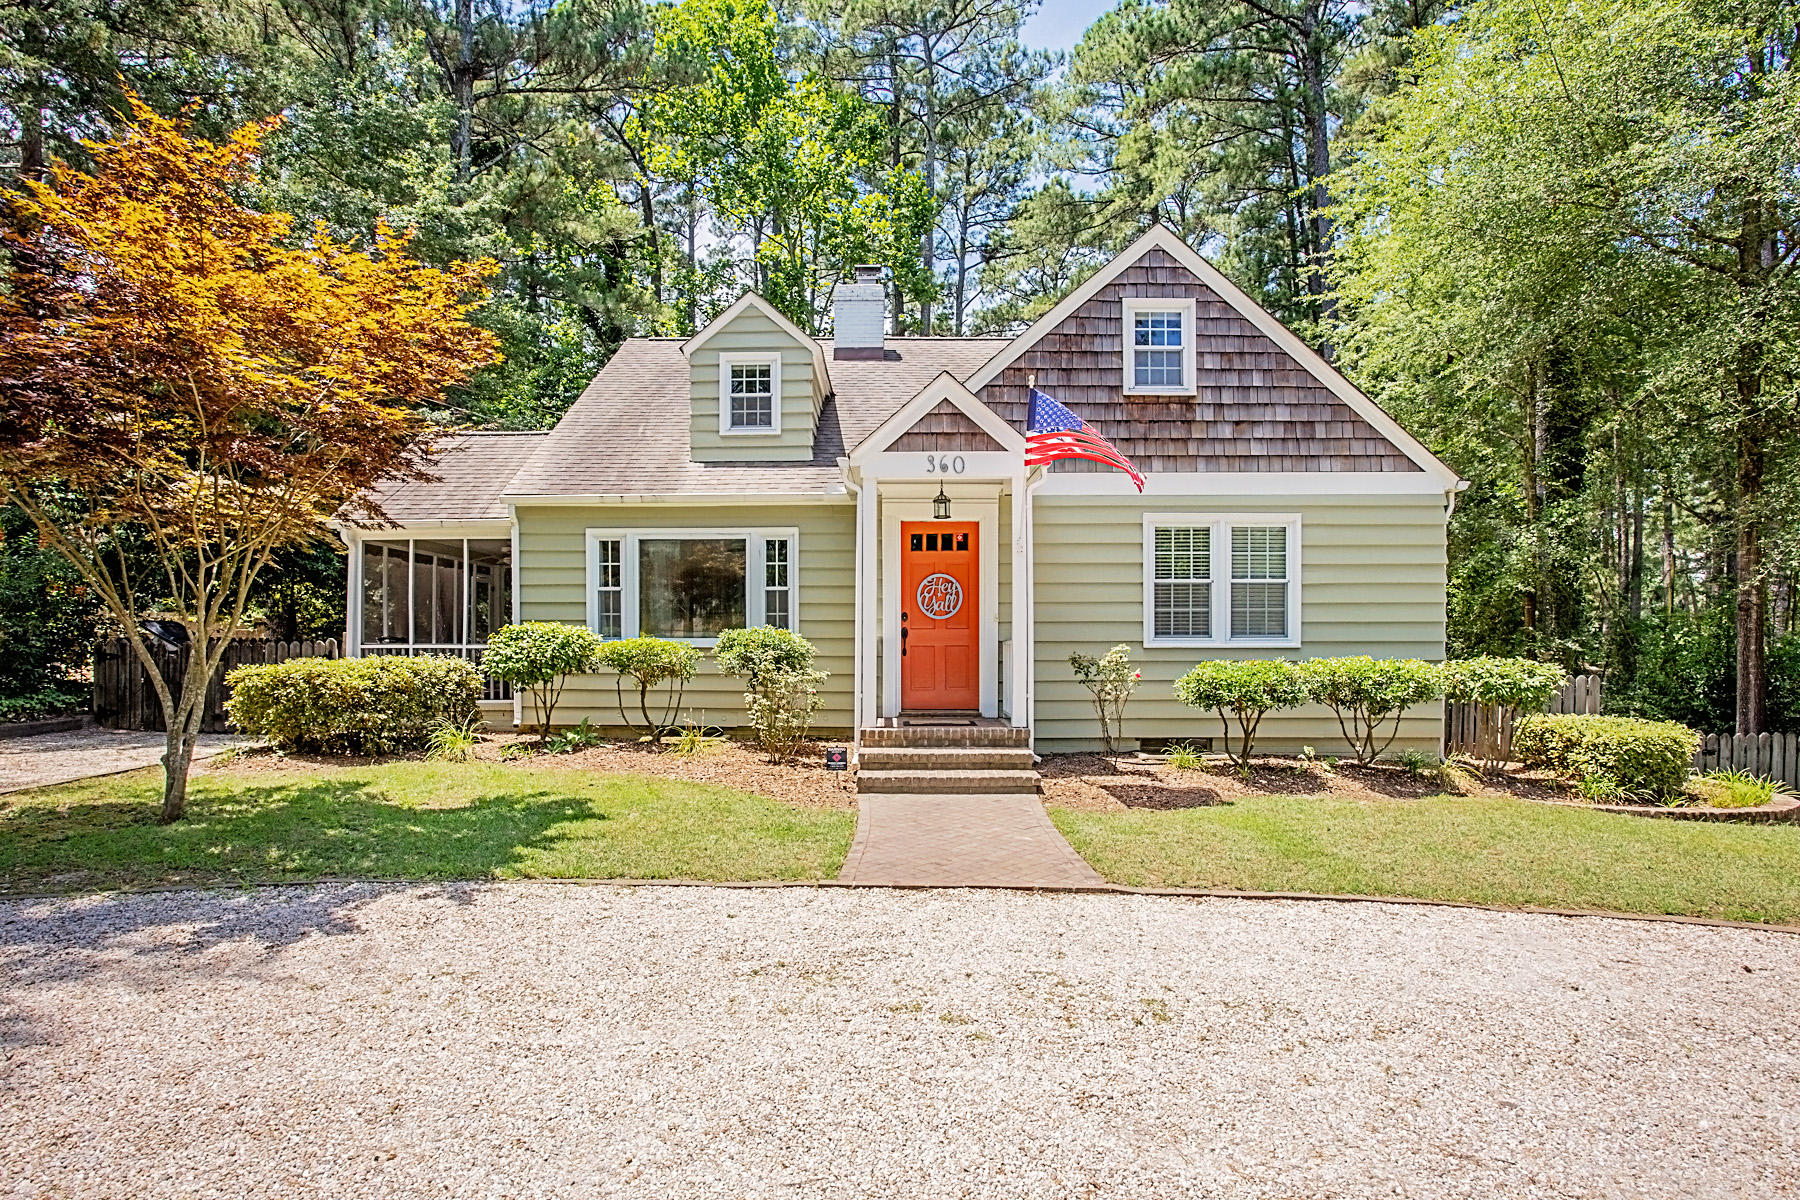 360 E Indiana Avenue, Southern Pines, North Carolina